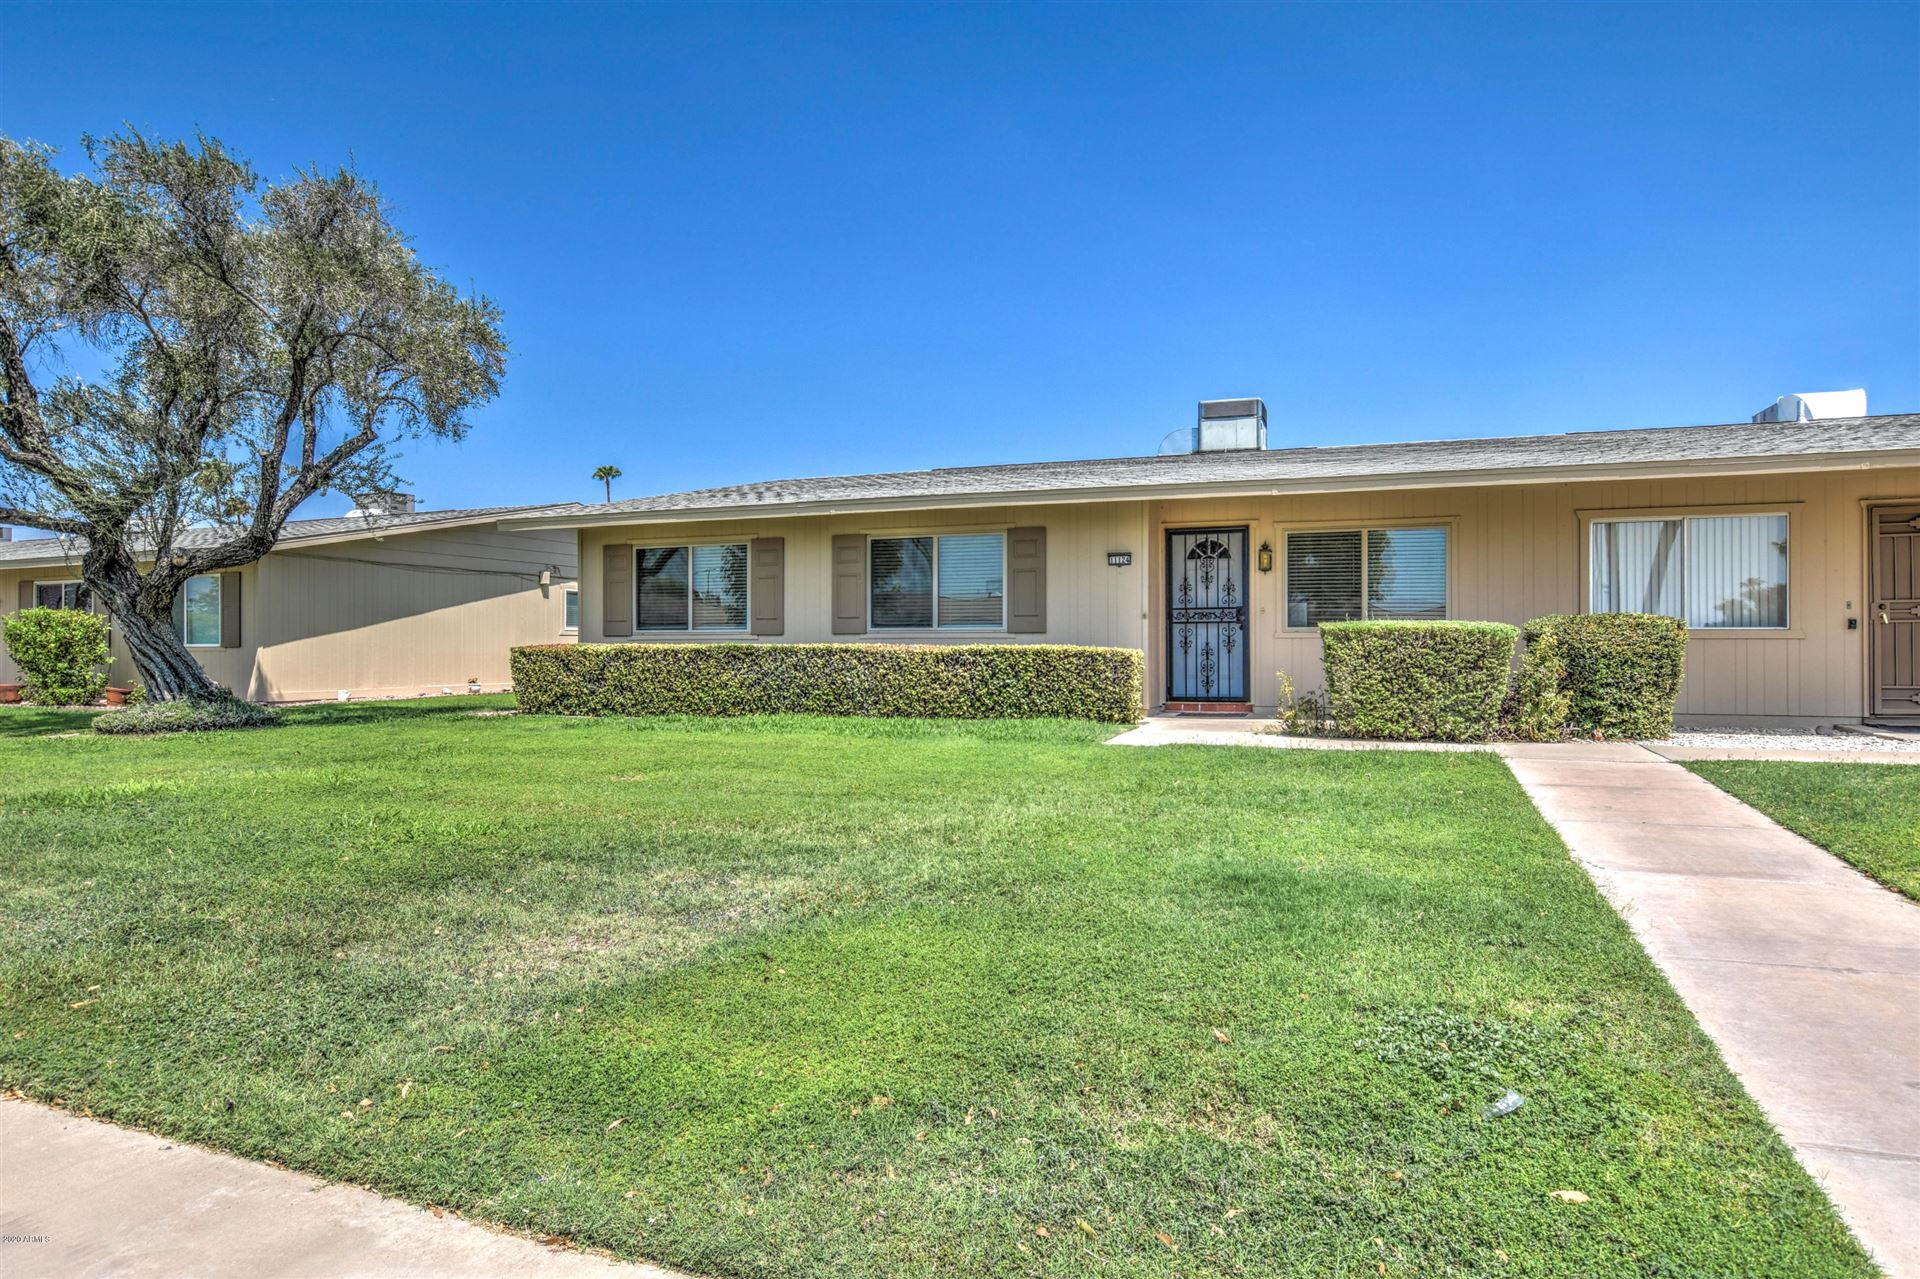 11124 W EMERALD Drive, Sun City, AZ 85351 - MLS#: 6119143